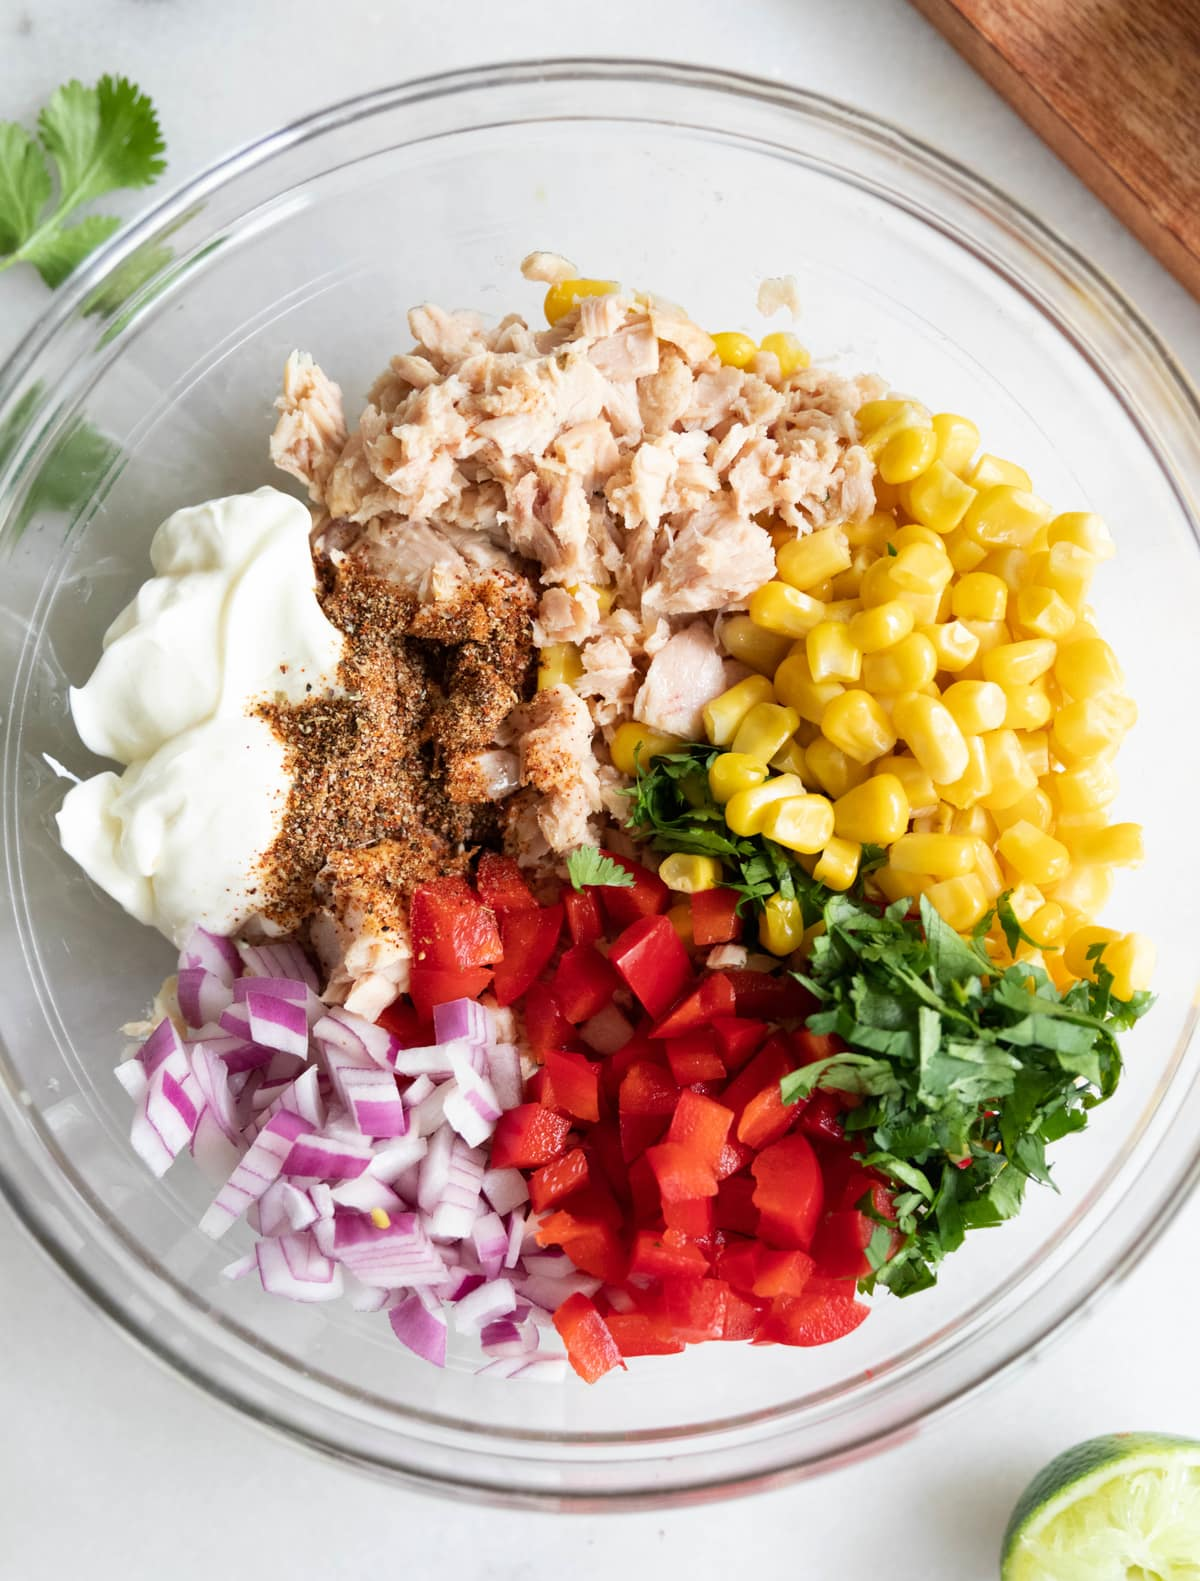 All the tuna salad ingredients added to a large glass bowl, not yet mixed.